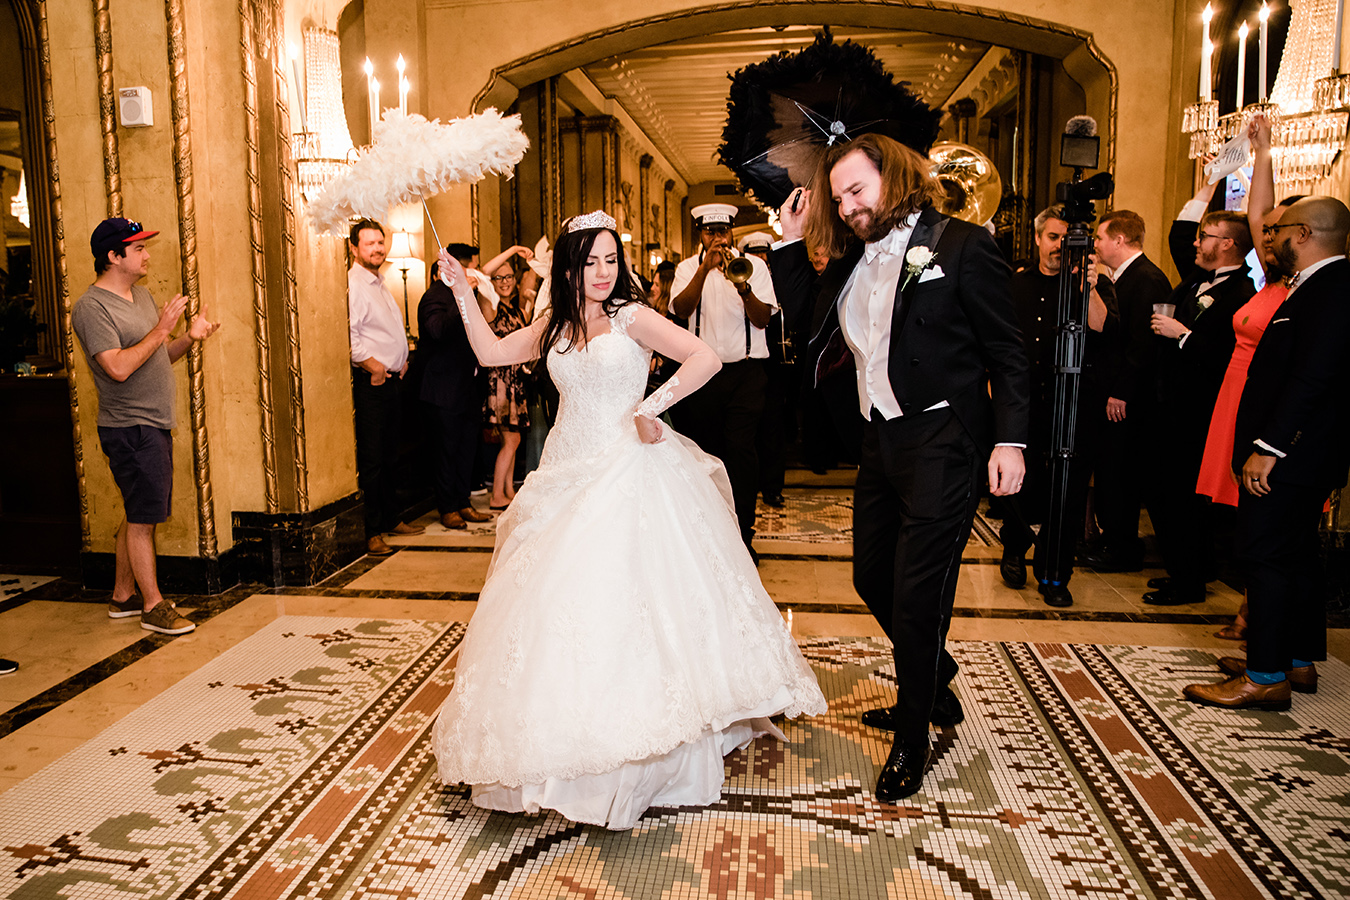 The couple treated their guests to a traditional Second Line parade from the Roosevelt rooftop to the Waldorf Astoria Ballroom.